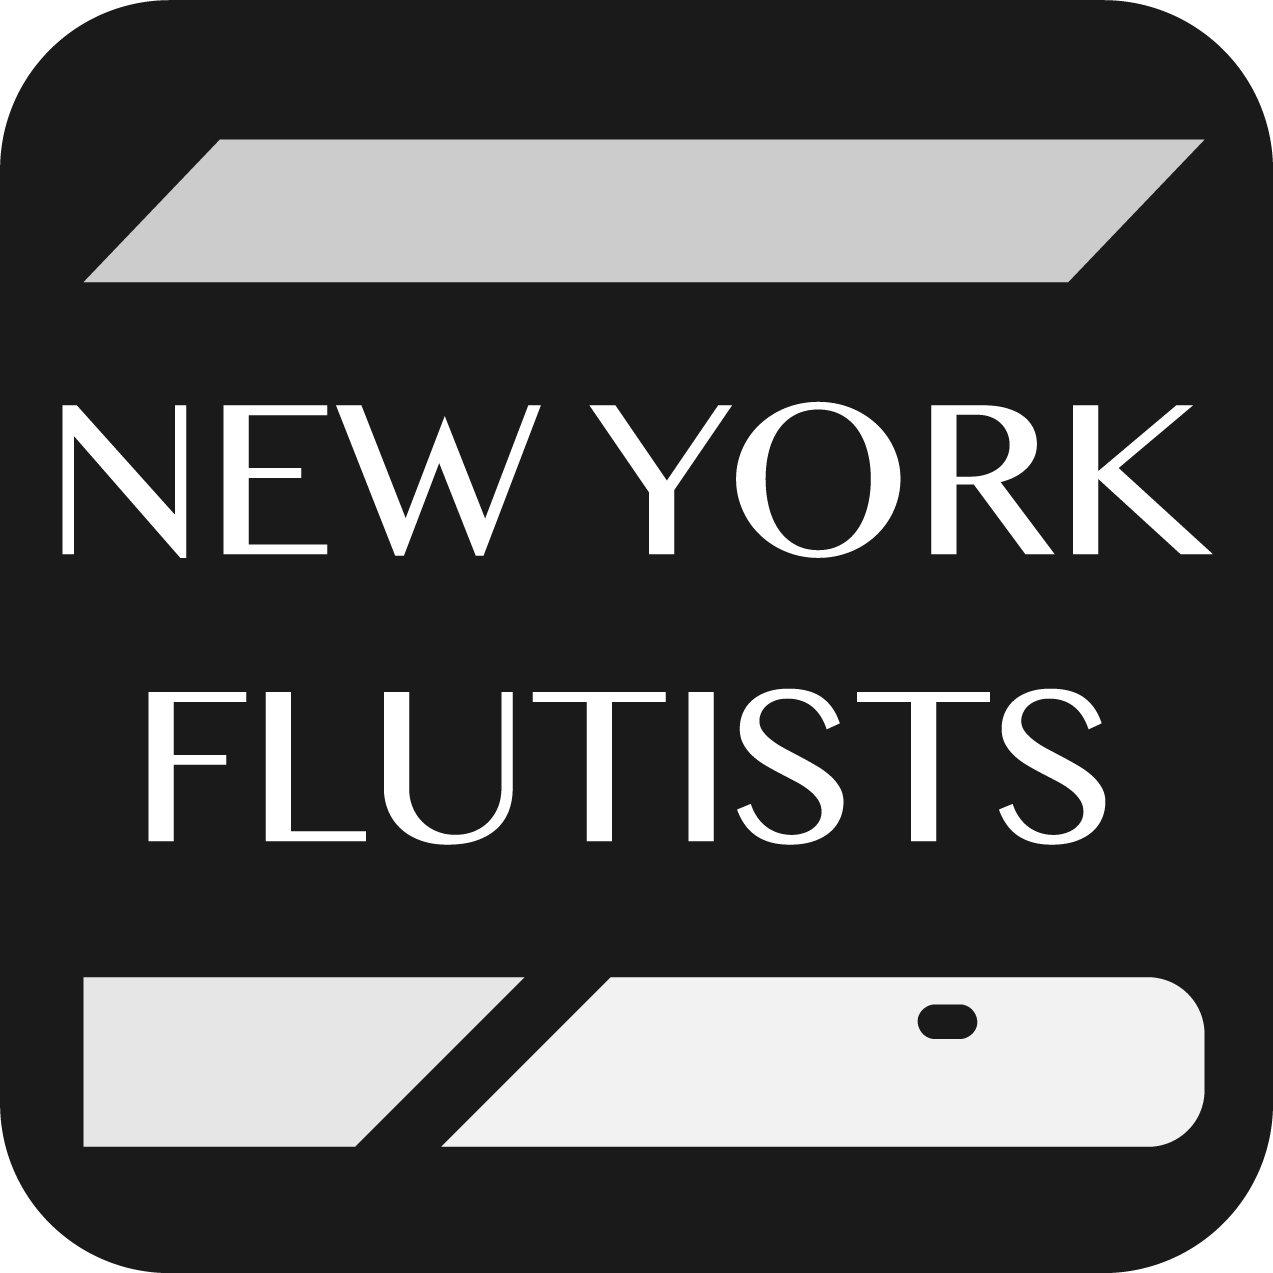 NEW YORK FLUTISTS